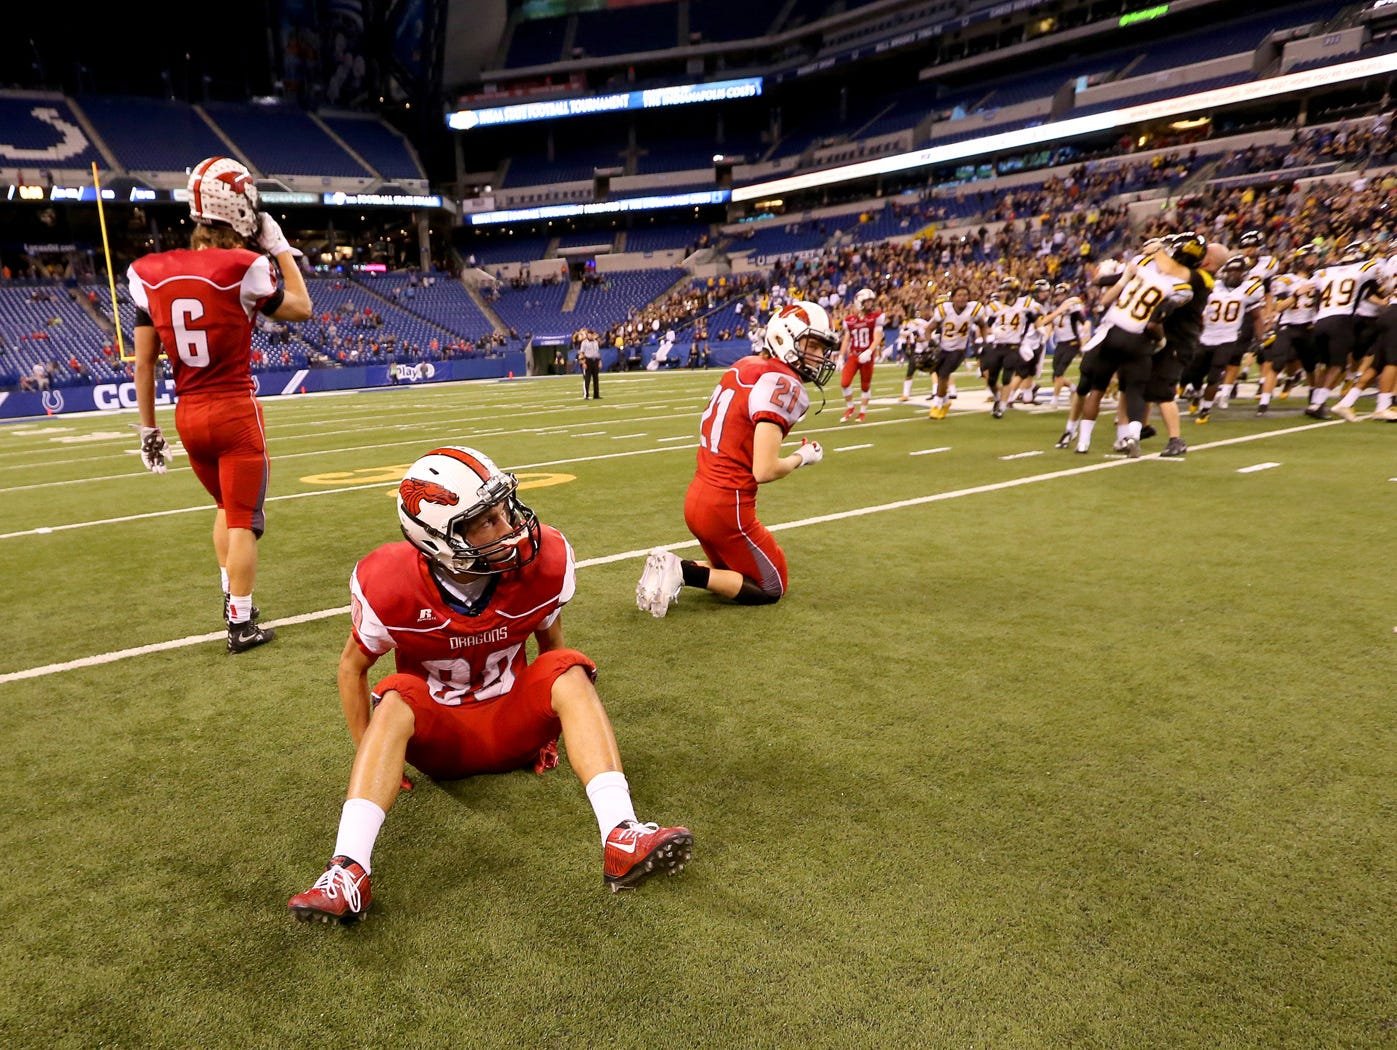 The New Palestine Dragons face off against the Fort Wayne Snider Panthers in the Class 5A IHSAA Football State Tournament finals presented by the Indianapolis Colts at Lucas Oil Stadium on Nov. 27, 2015.